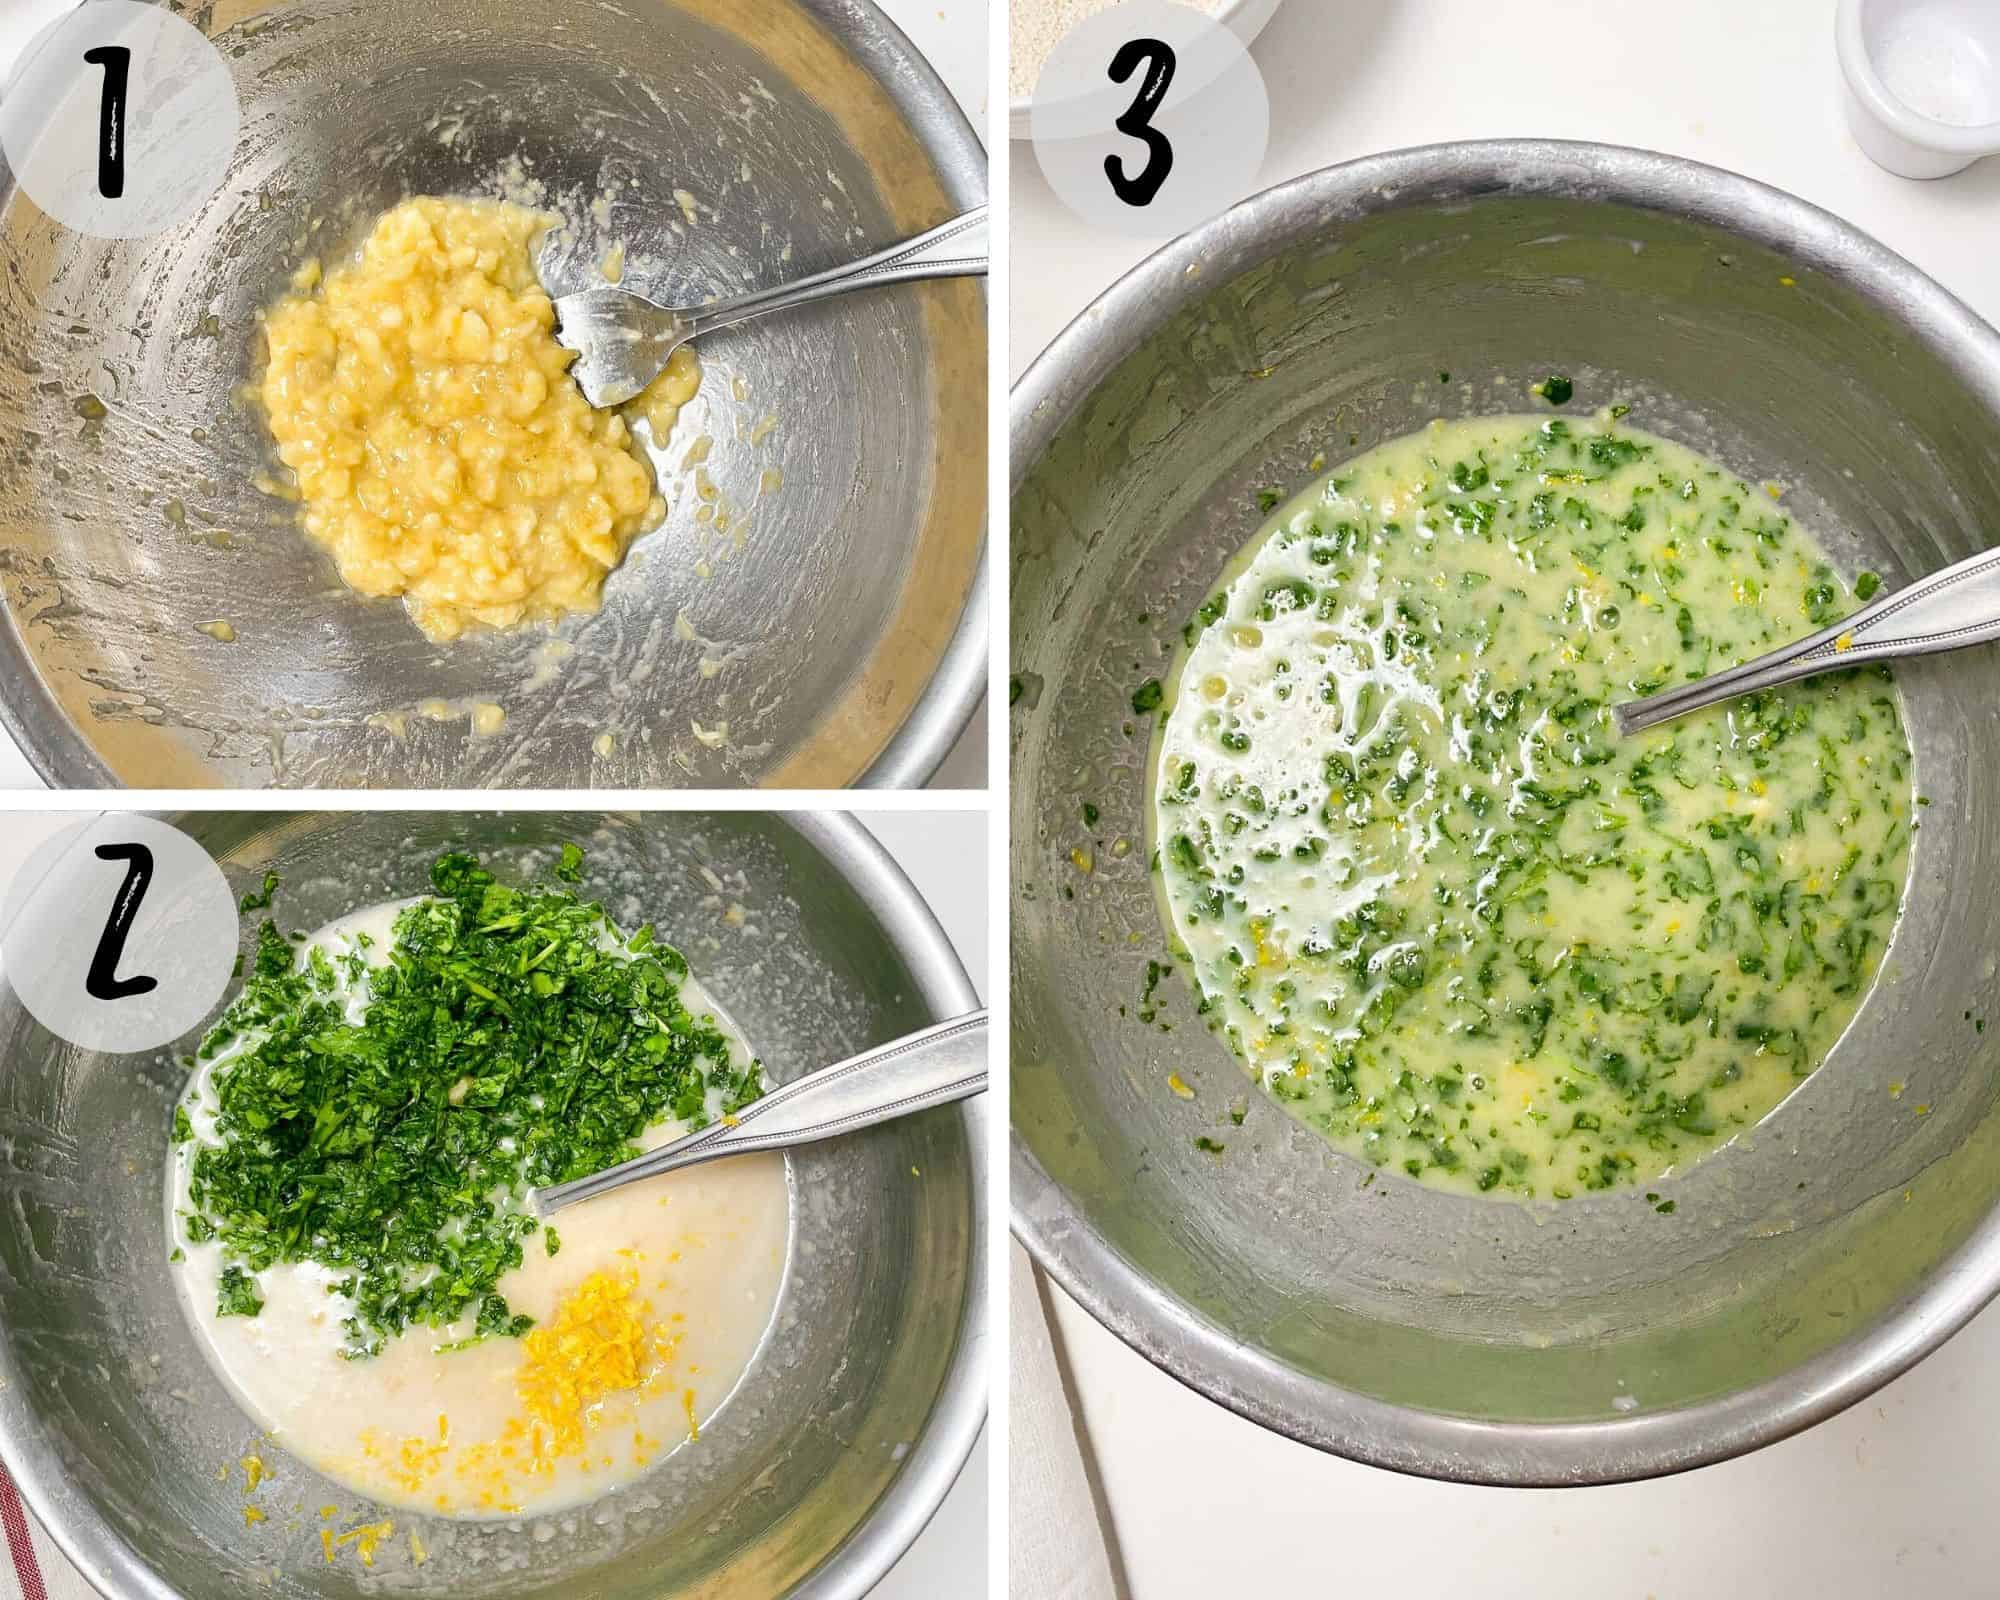 mashed banana in large bowl with chopped spinach and lemon zest to make muffin batter